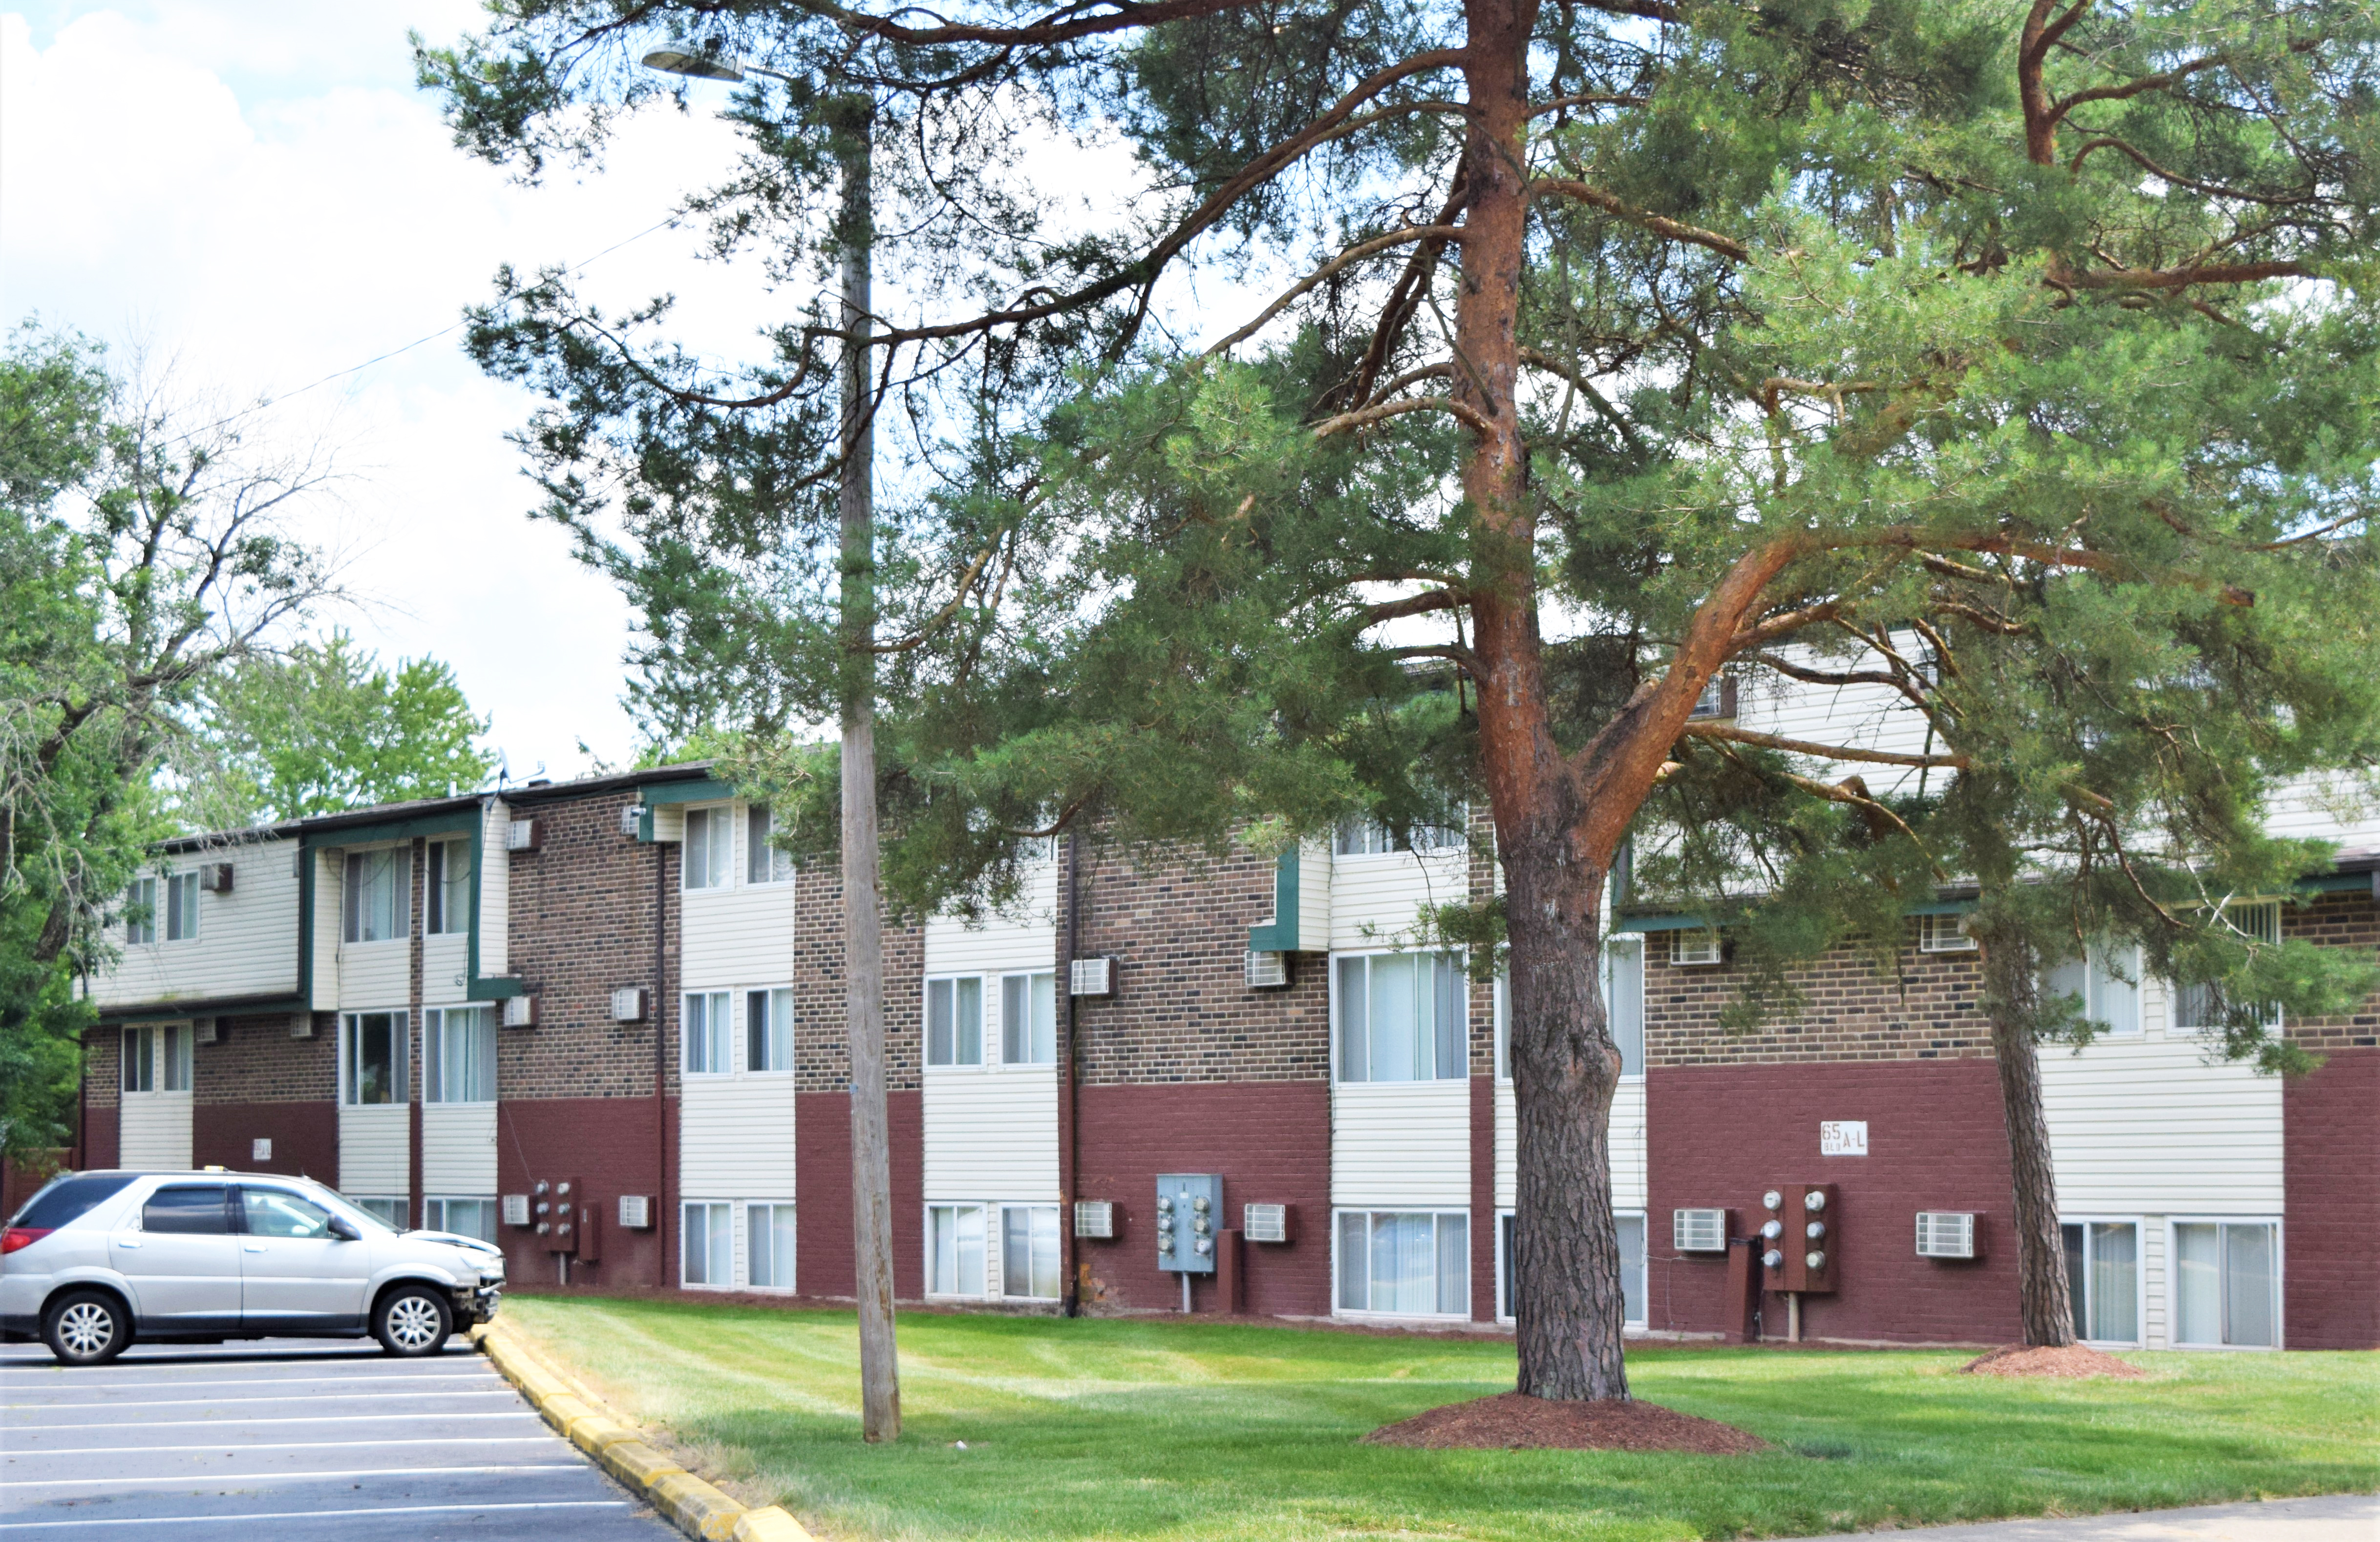 Pinewood Gardens (Affordable Housing; Income Limit Restrictions Apply)